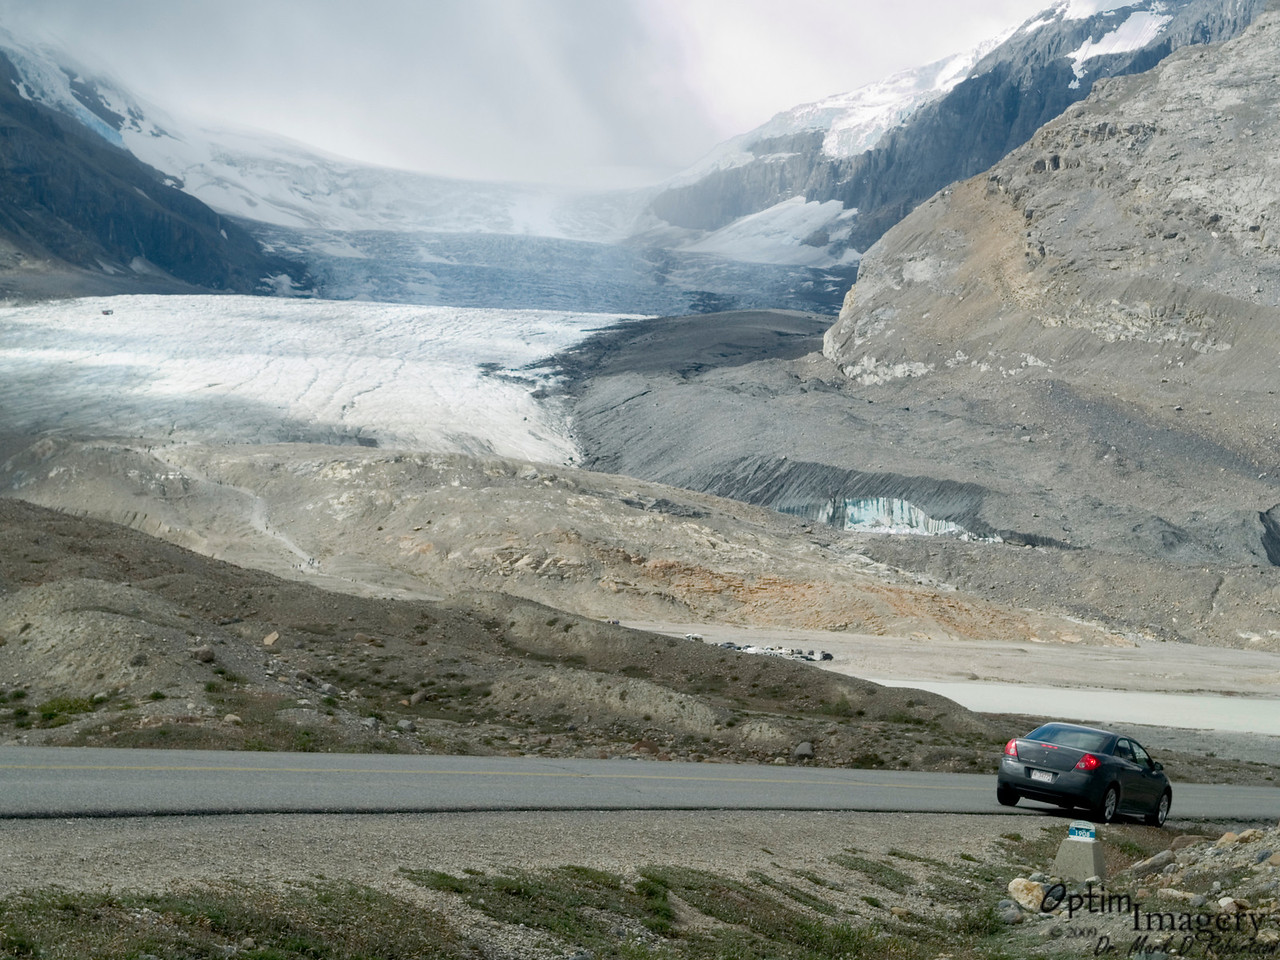 This is where the glacier extended to in 1908.  The pathway you see in the distance with the people on it is where we were in the last few photos.